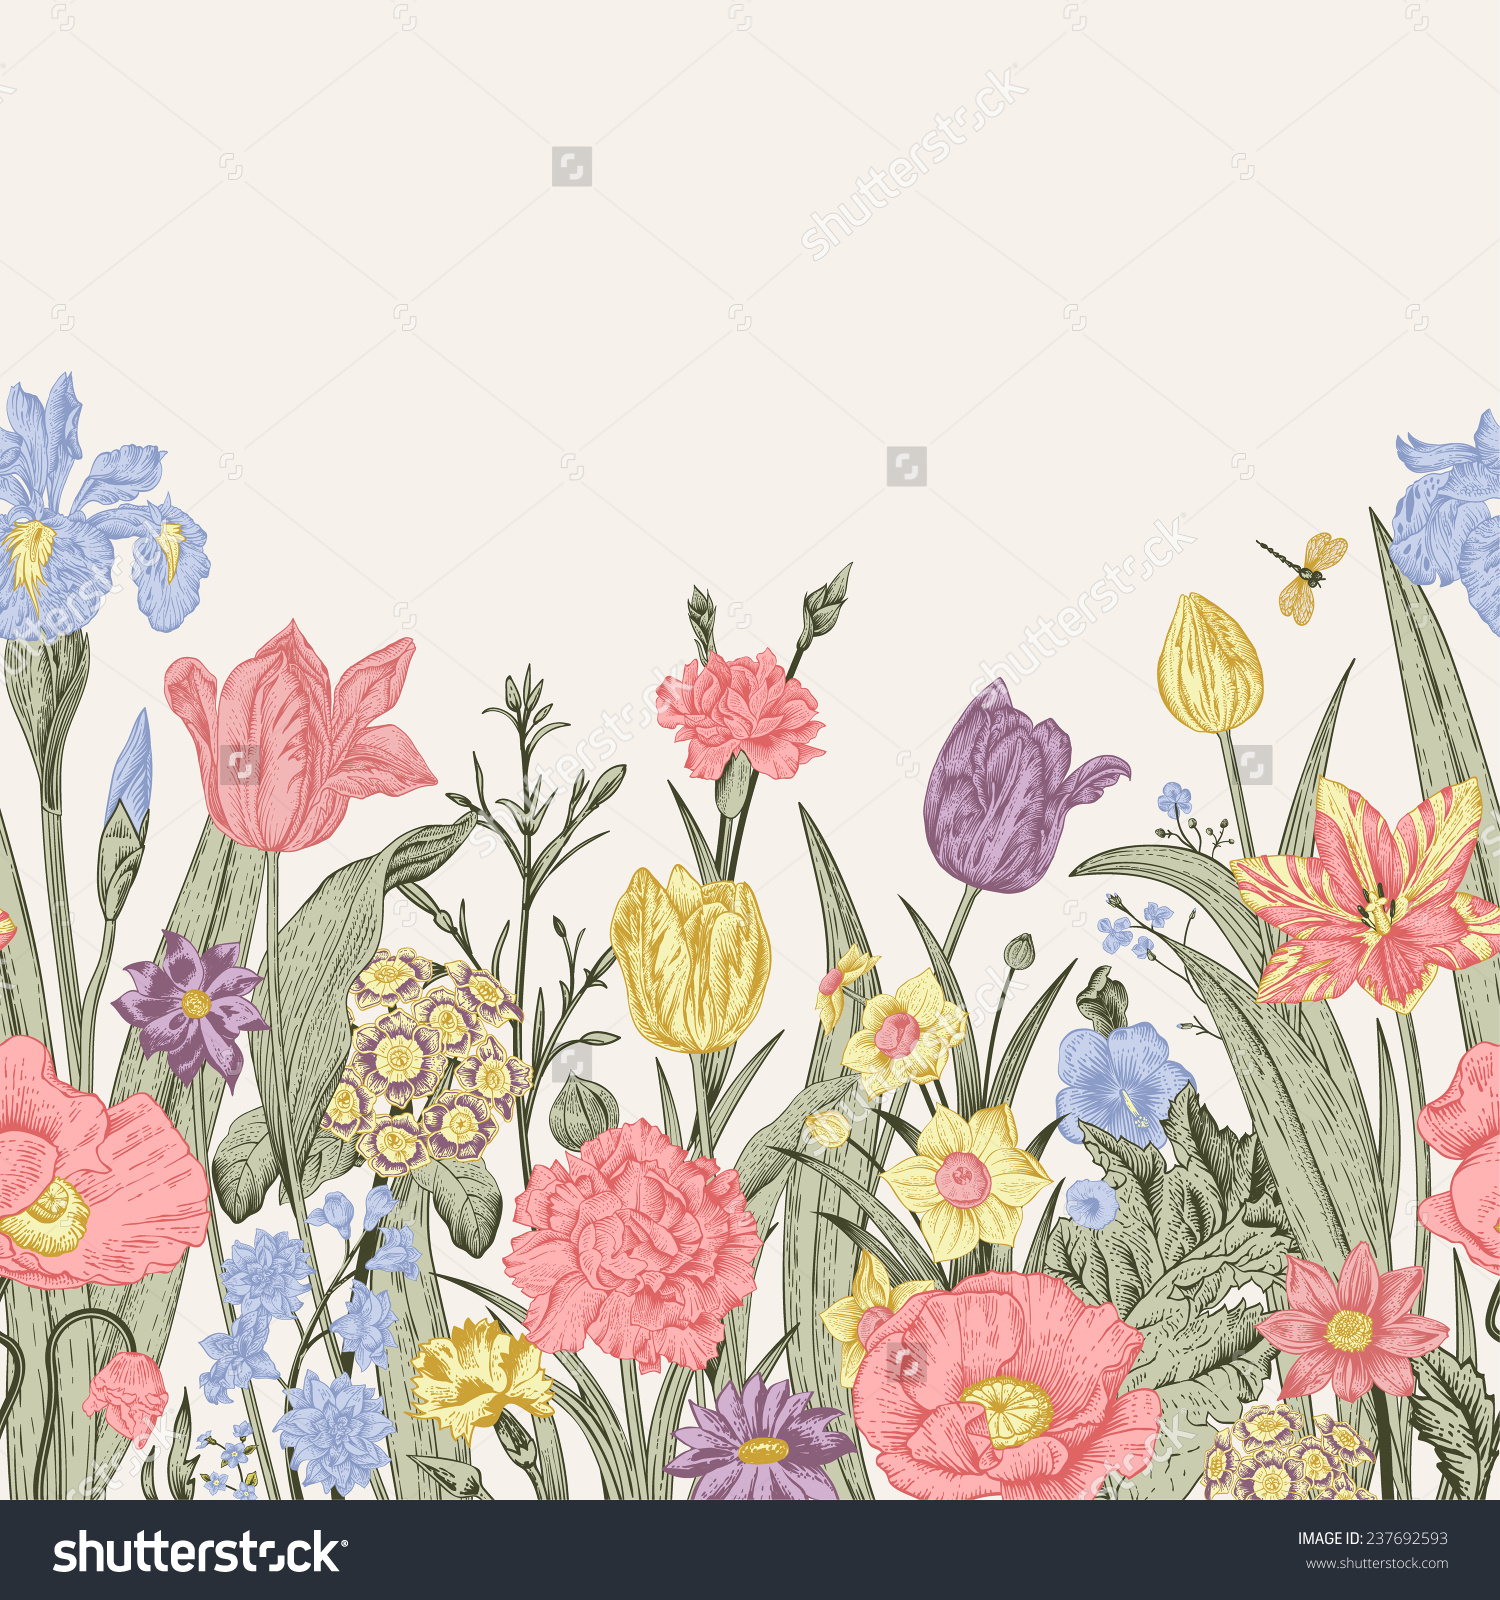 Spring Flowers Seamless Floral Border Pastel Stock Vector.